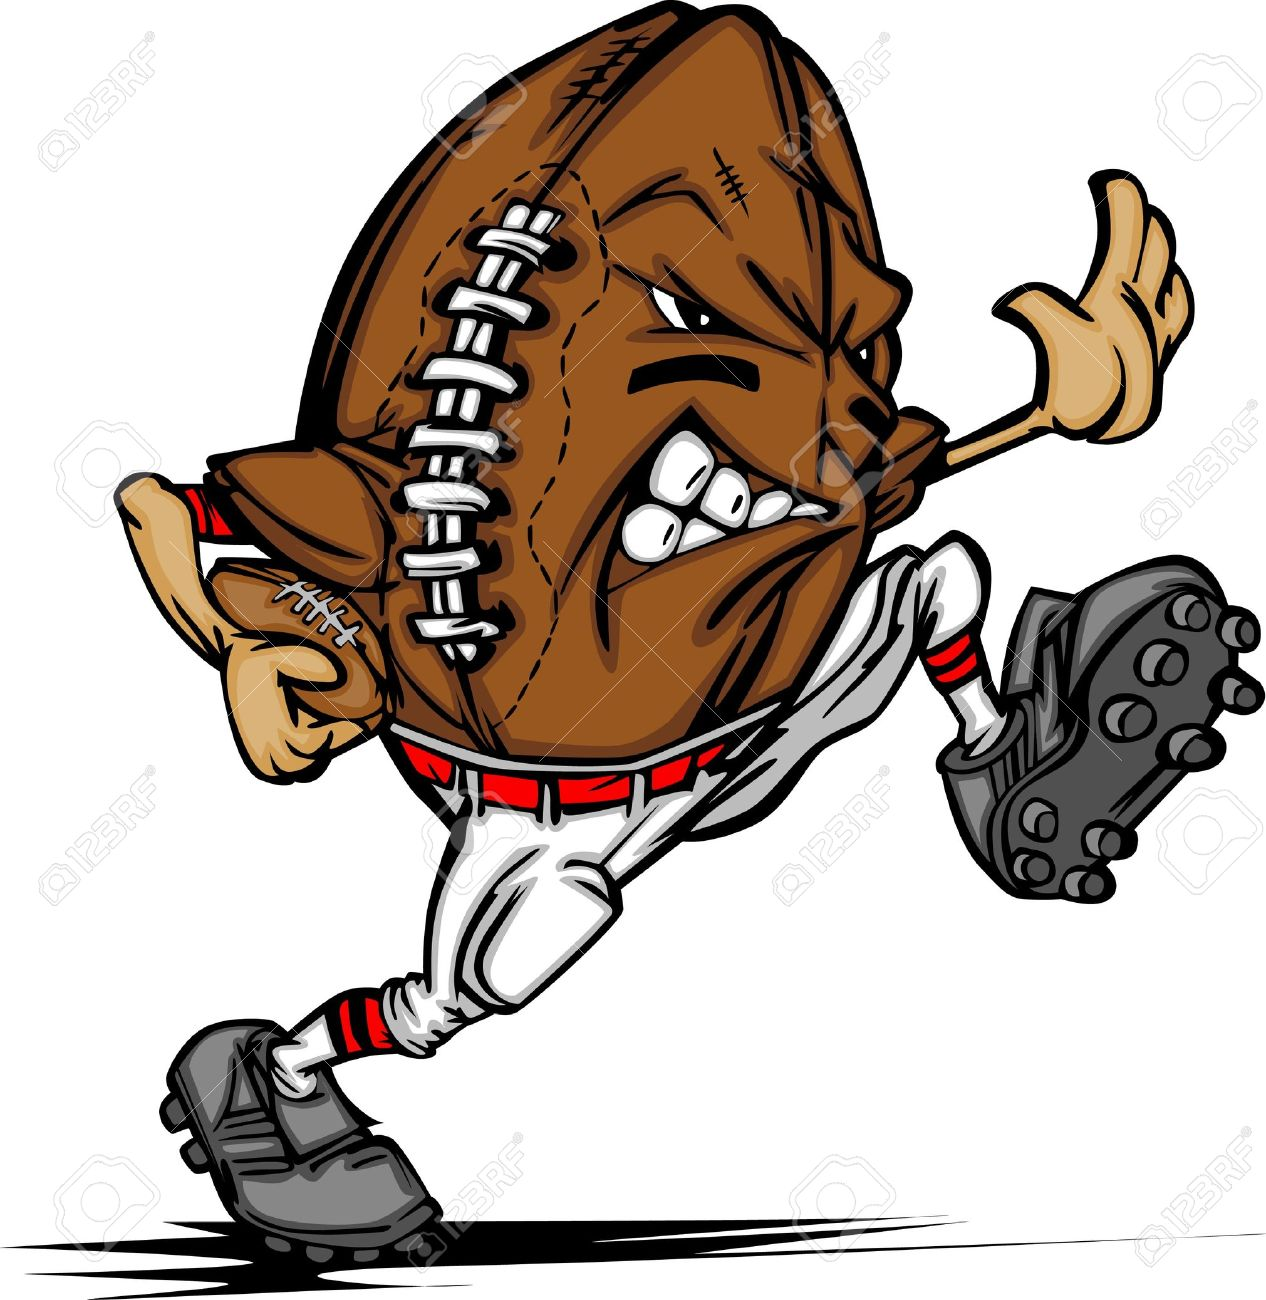 american football ball player cartoon royalty free cliparts vectors rh 123rf com Football Players Cartoon Characters Cartoon Football Player Holding a Sign